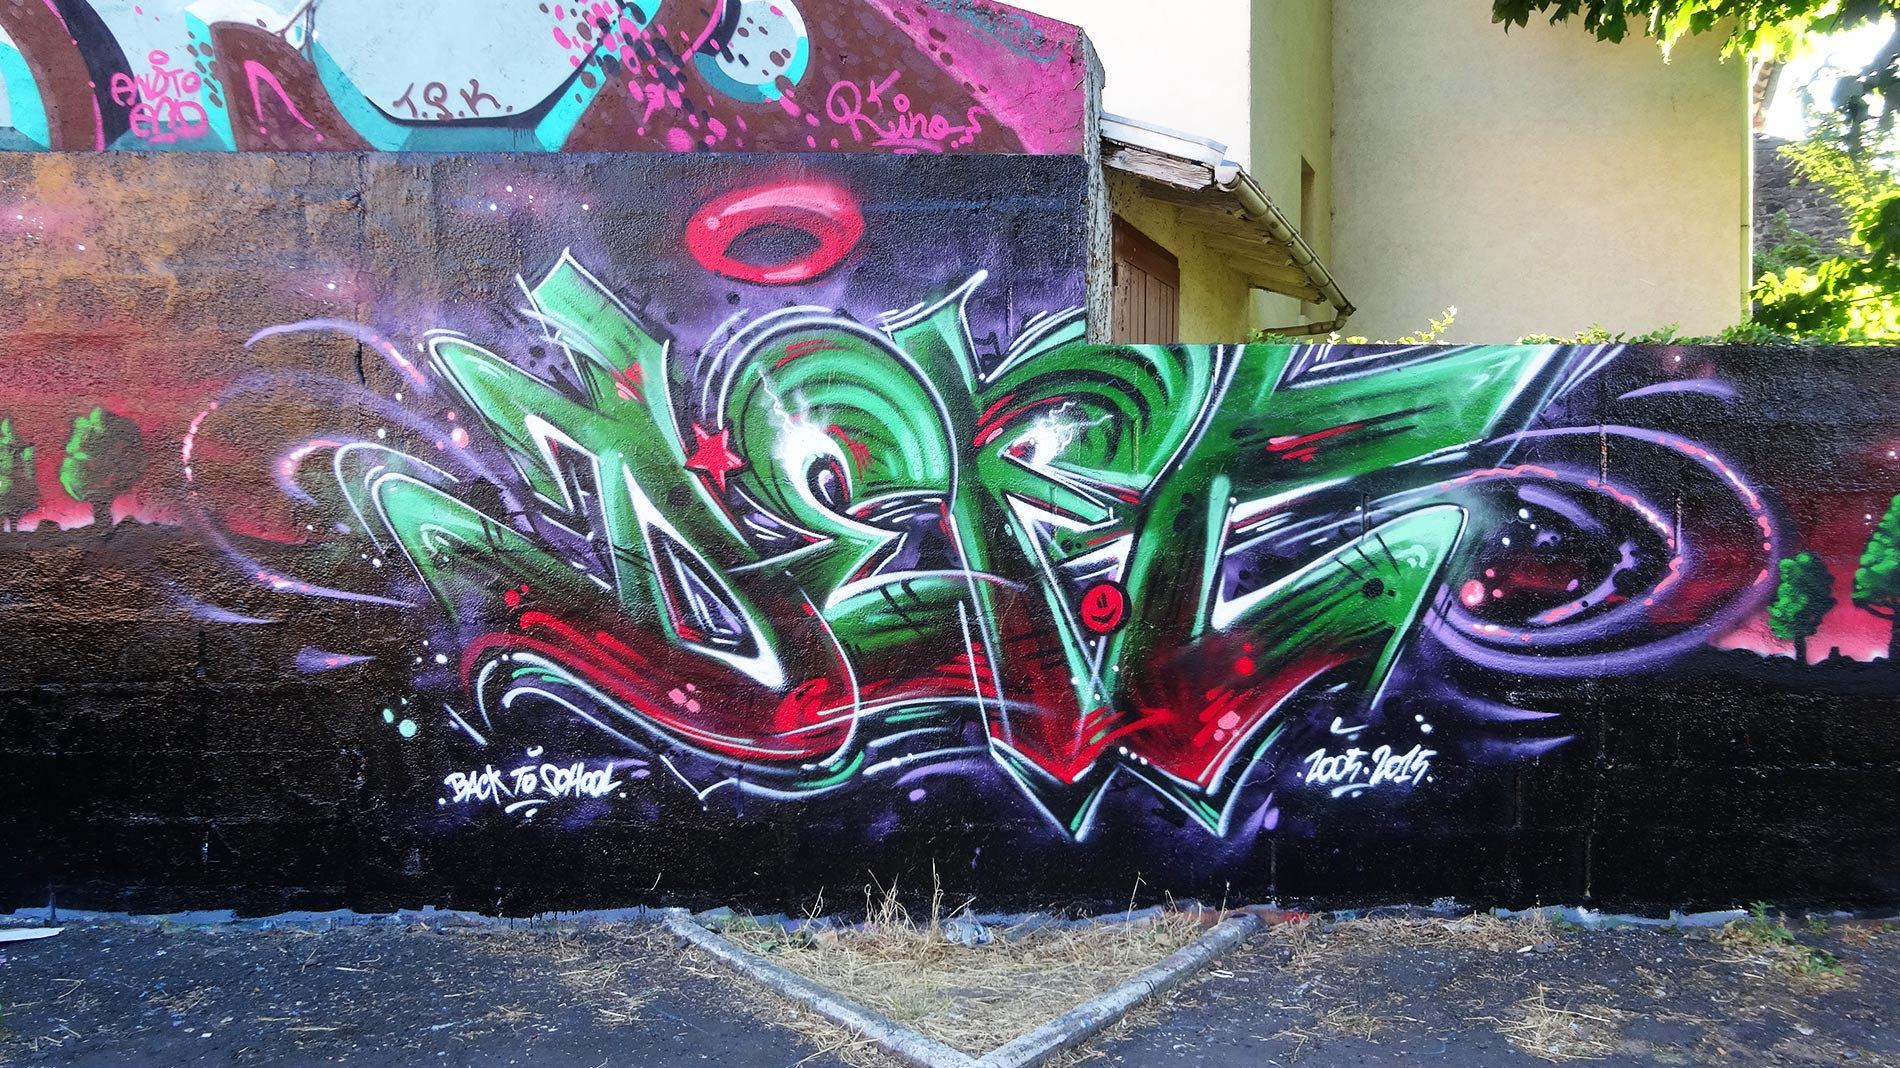 2015_07_deft_lettrage_graffiti_graphique_1